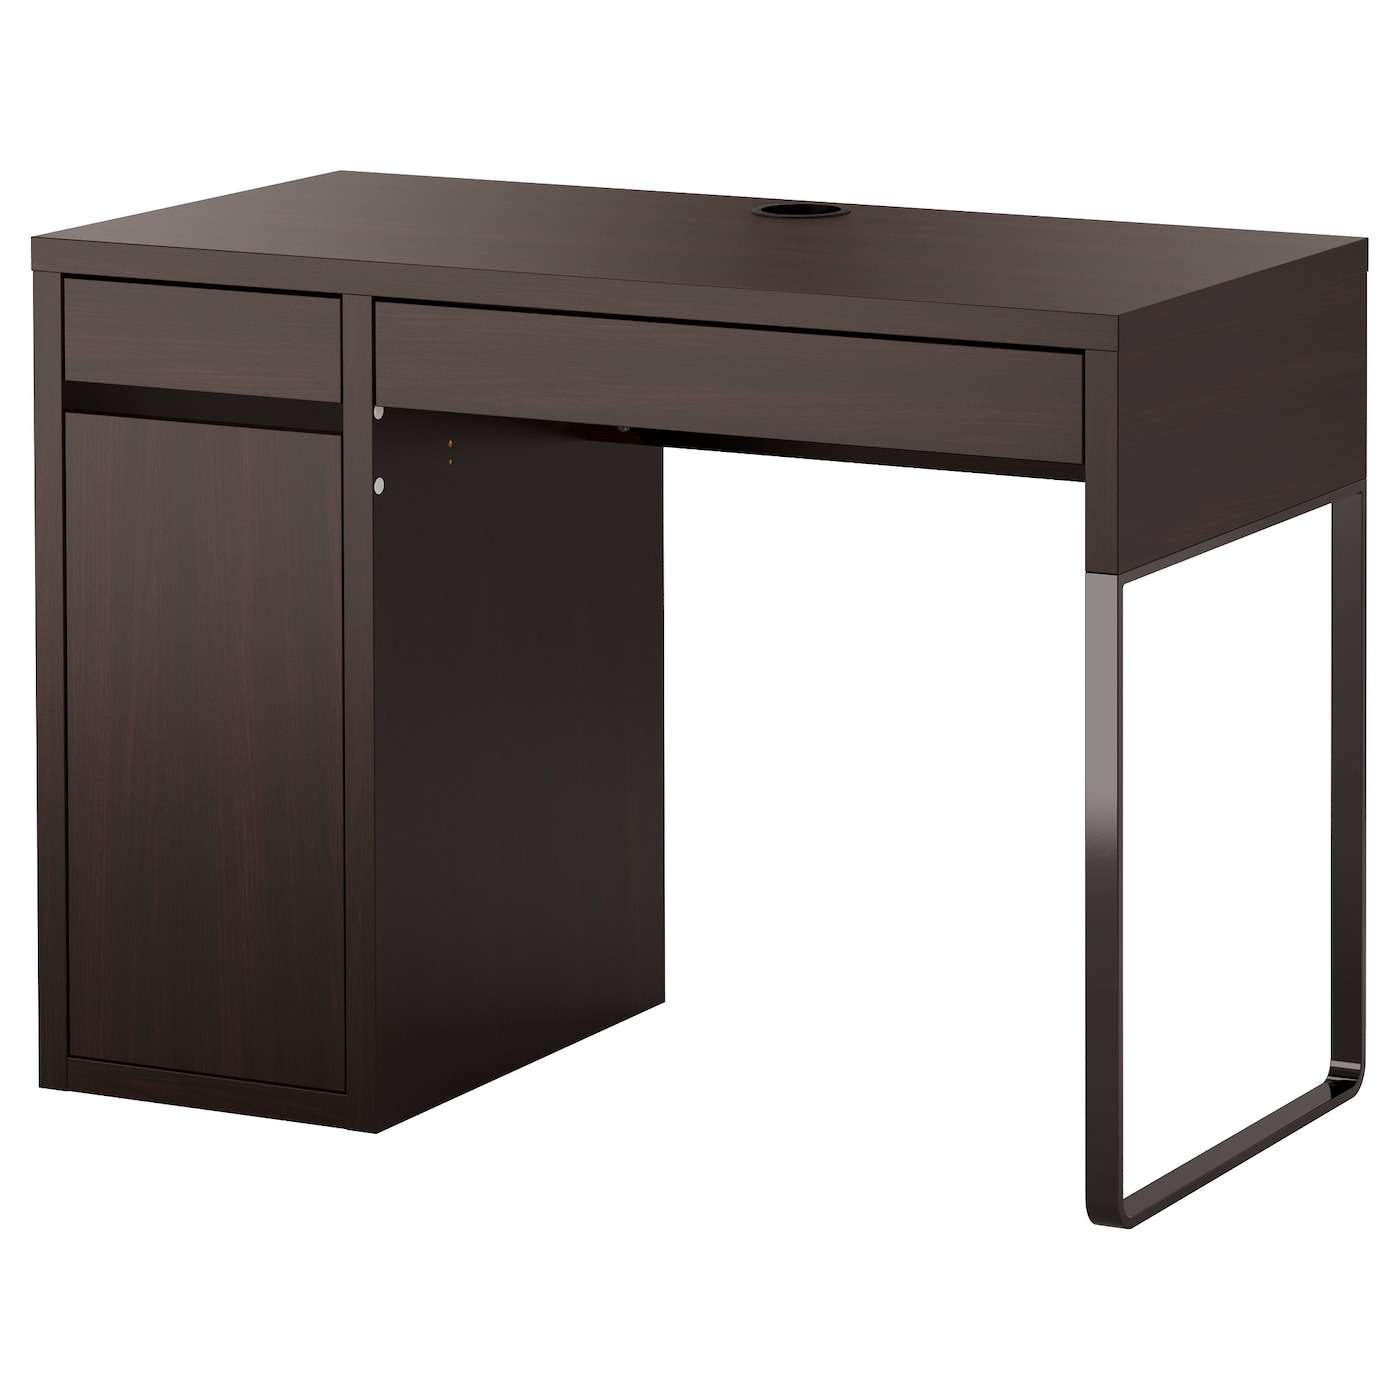 Micke desk black brown 105x50 cm ikea for Ikea drawing desk